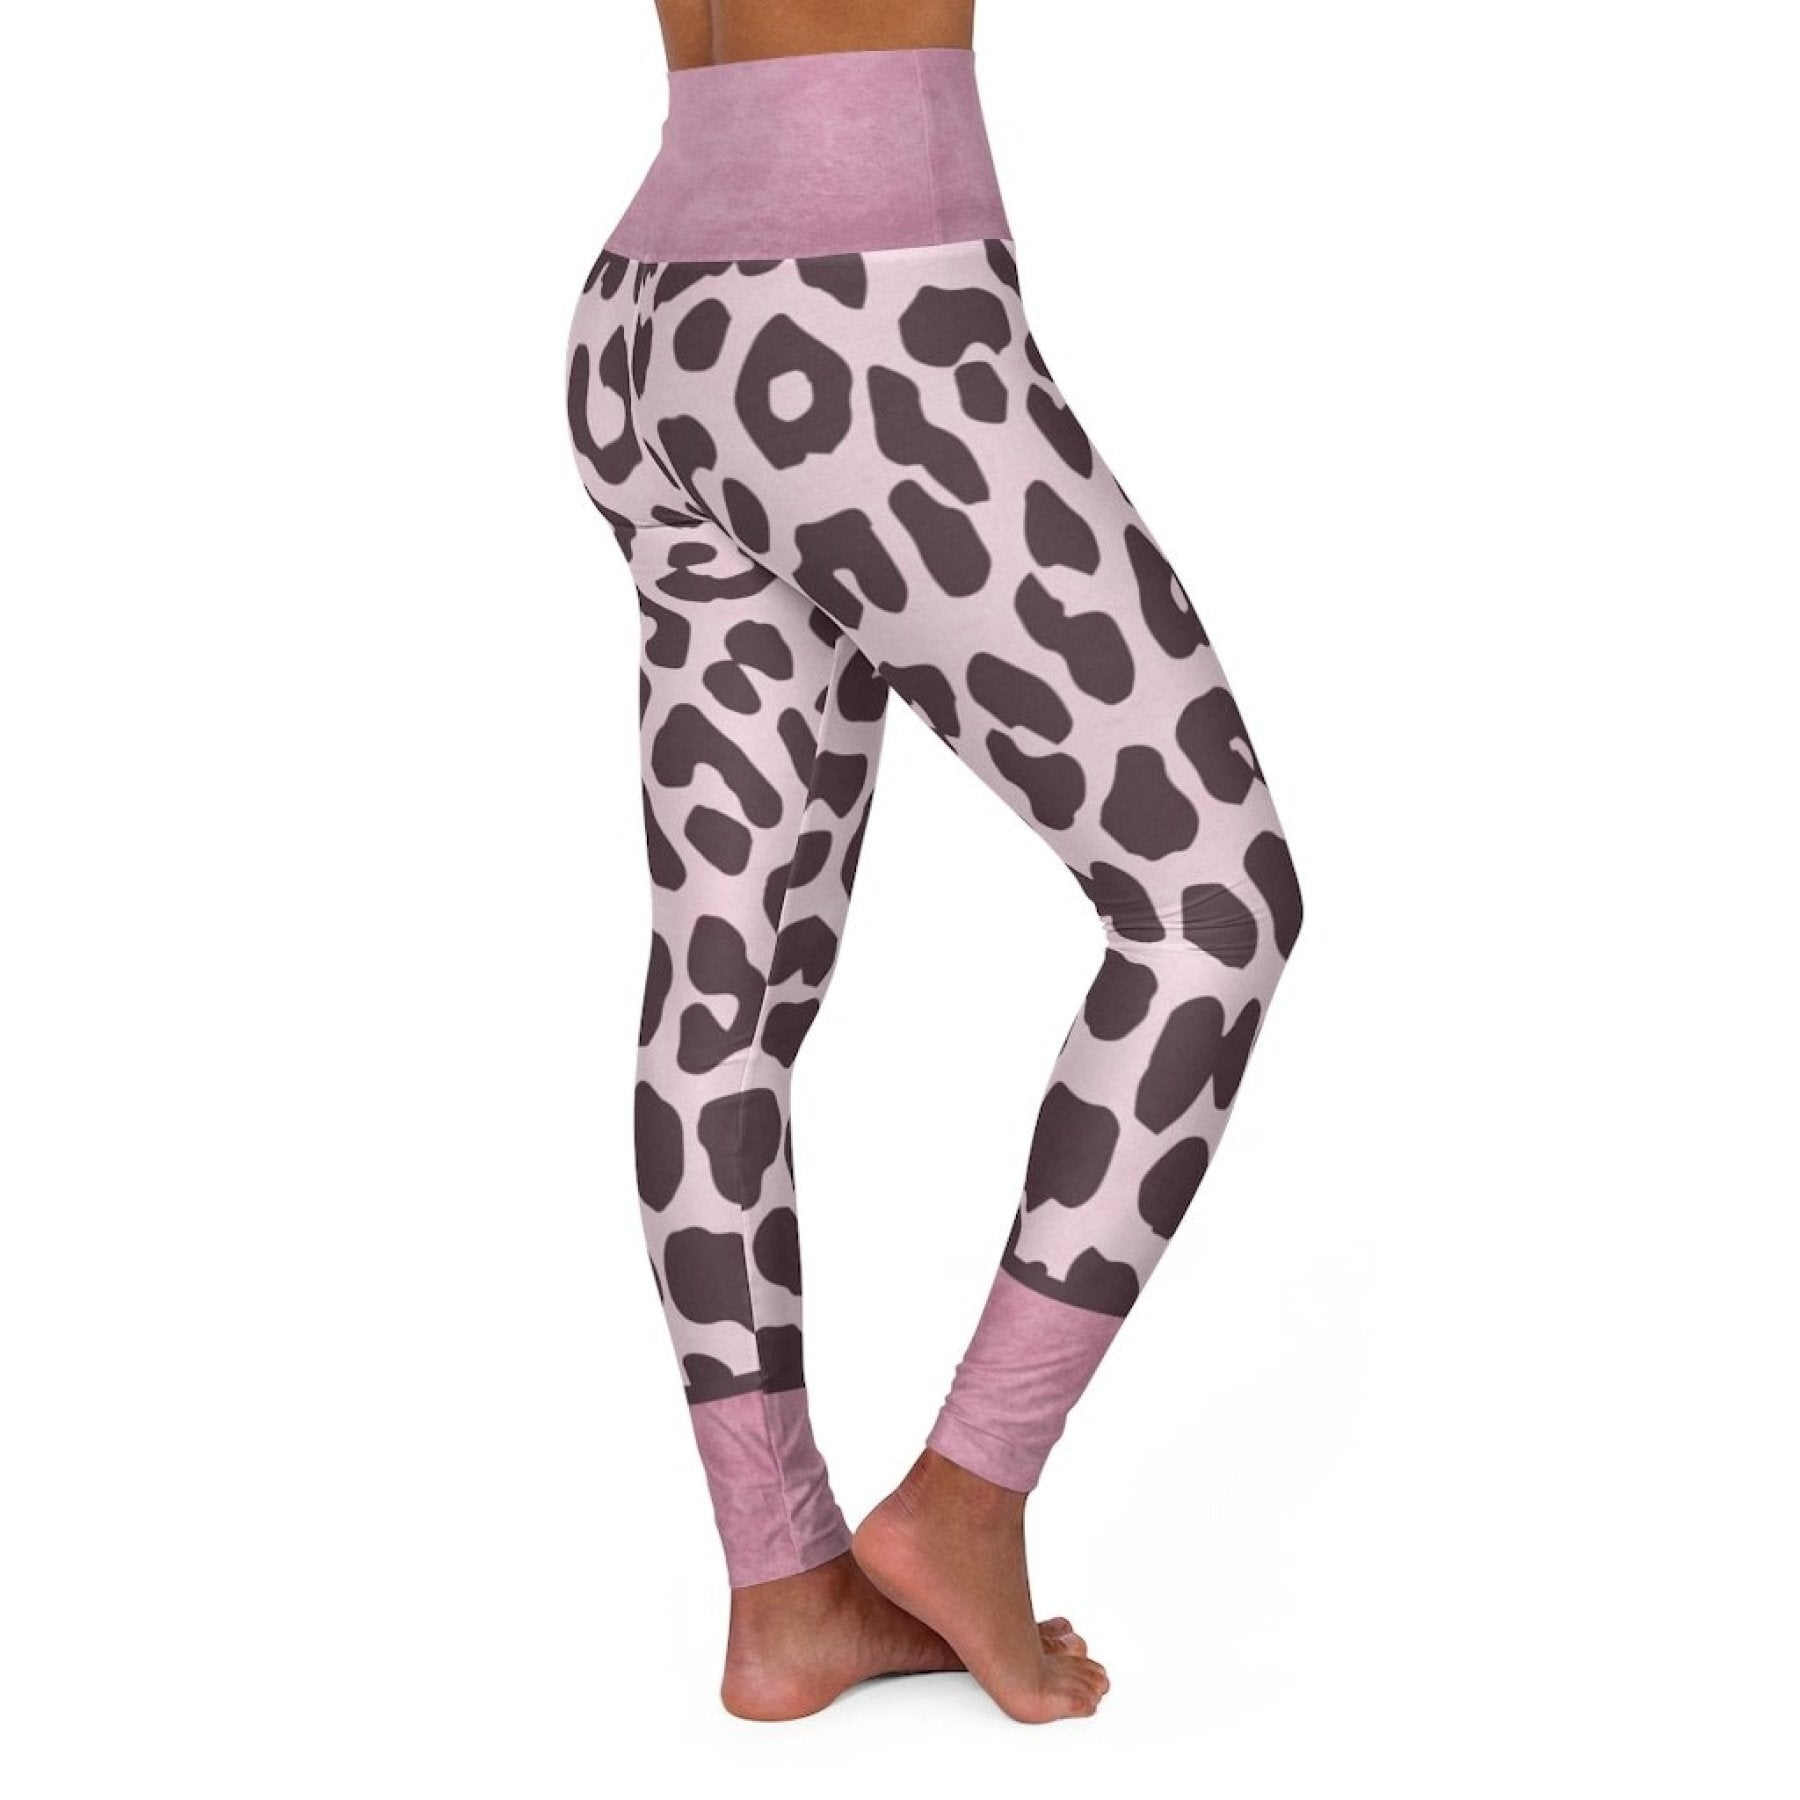 High Waisted Yoga Leggings, Heather Pink Two Tone Leopard Style Pants